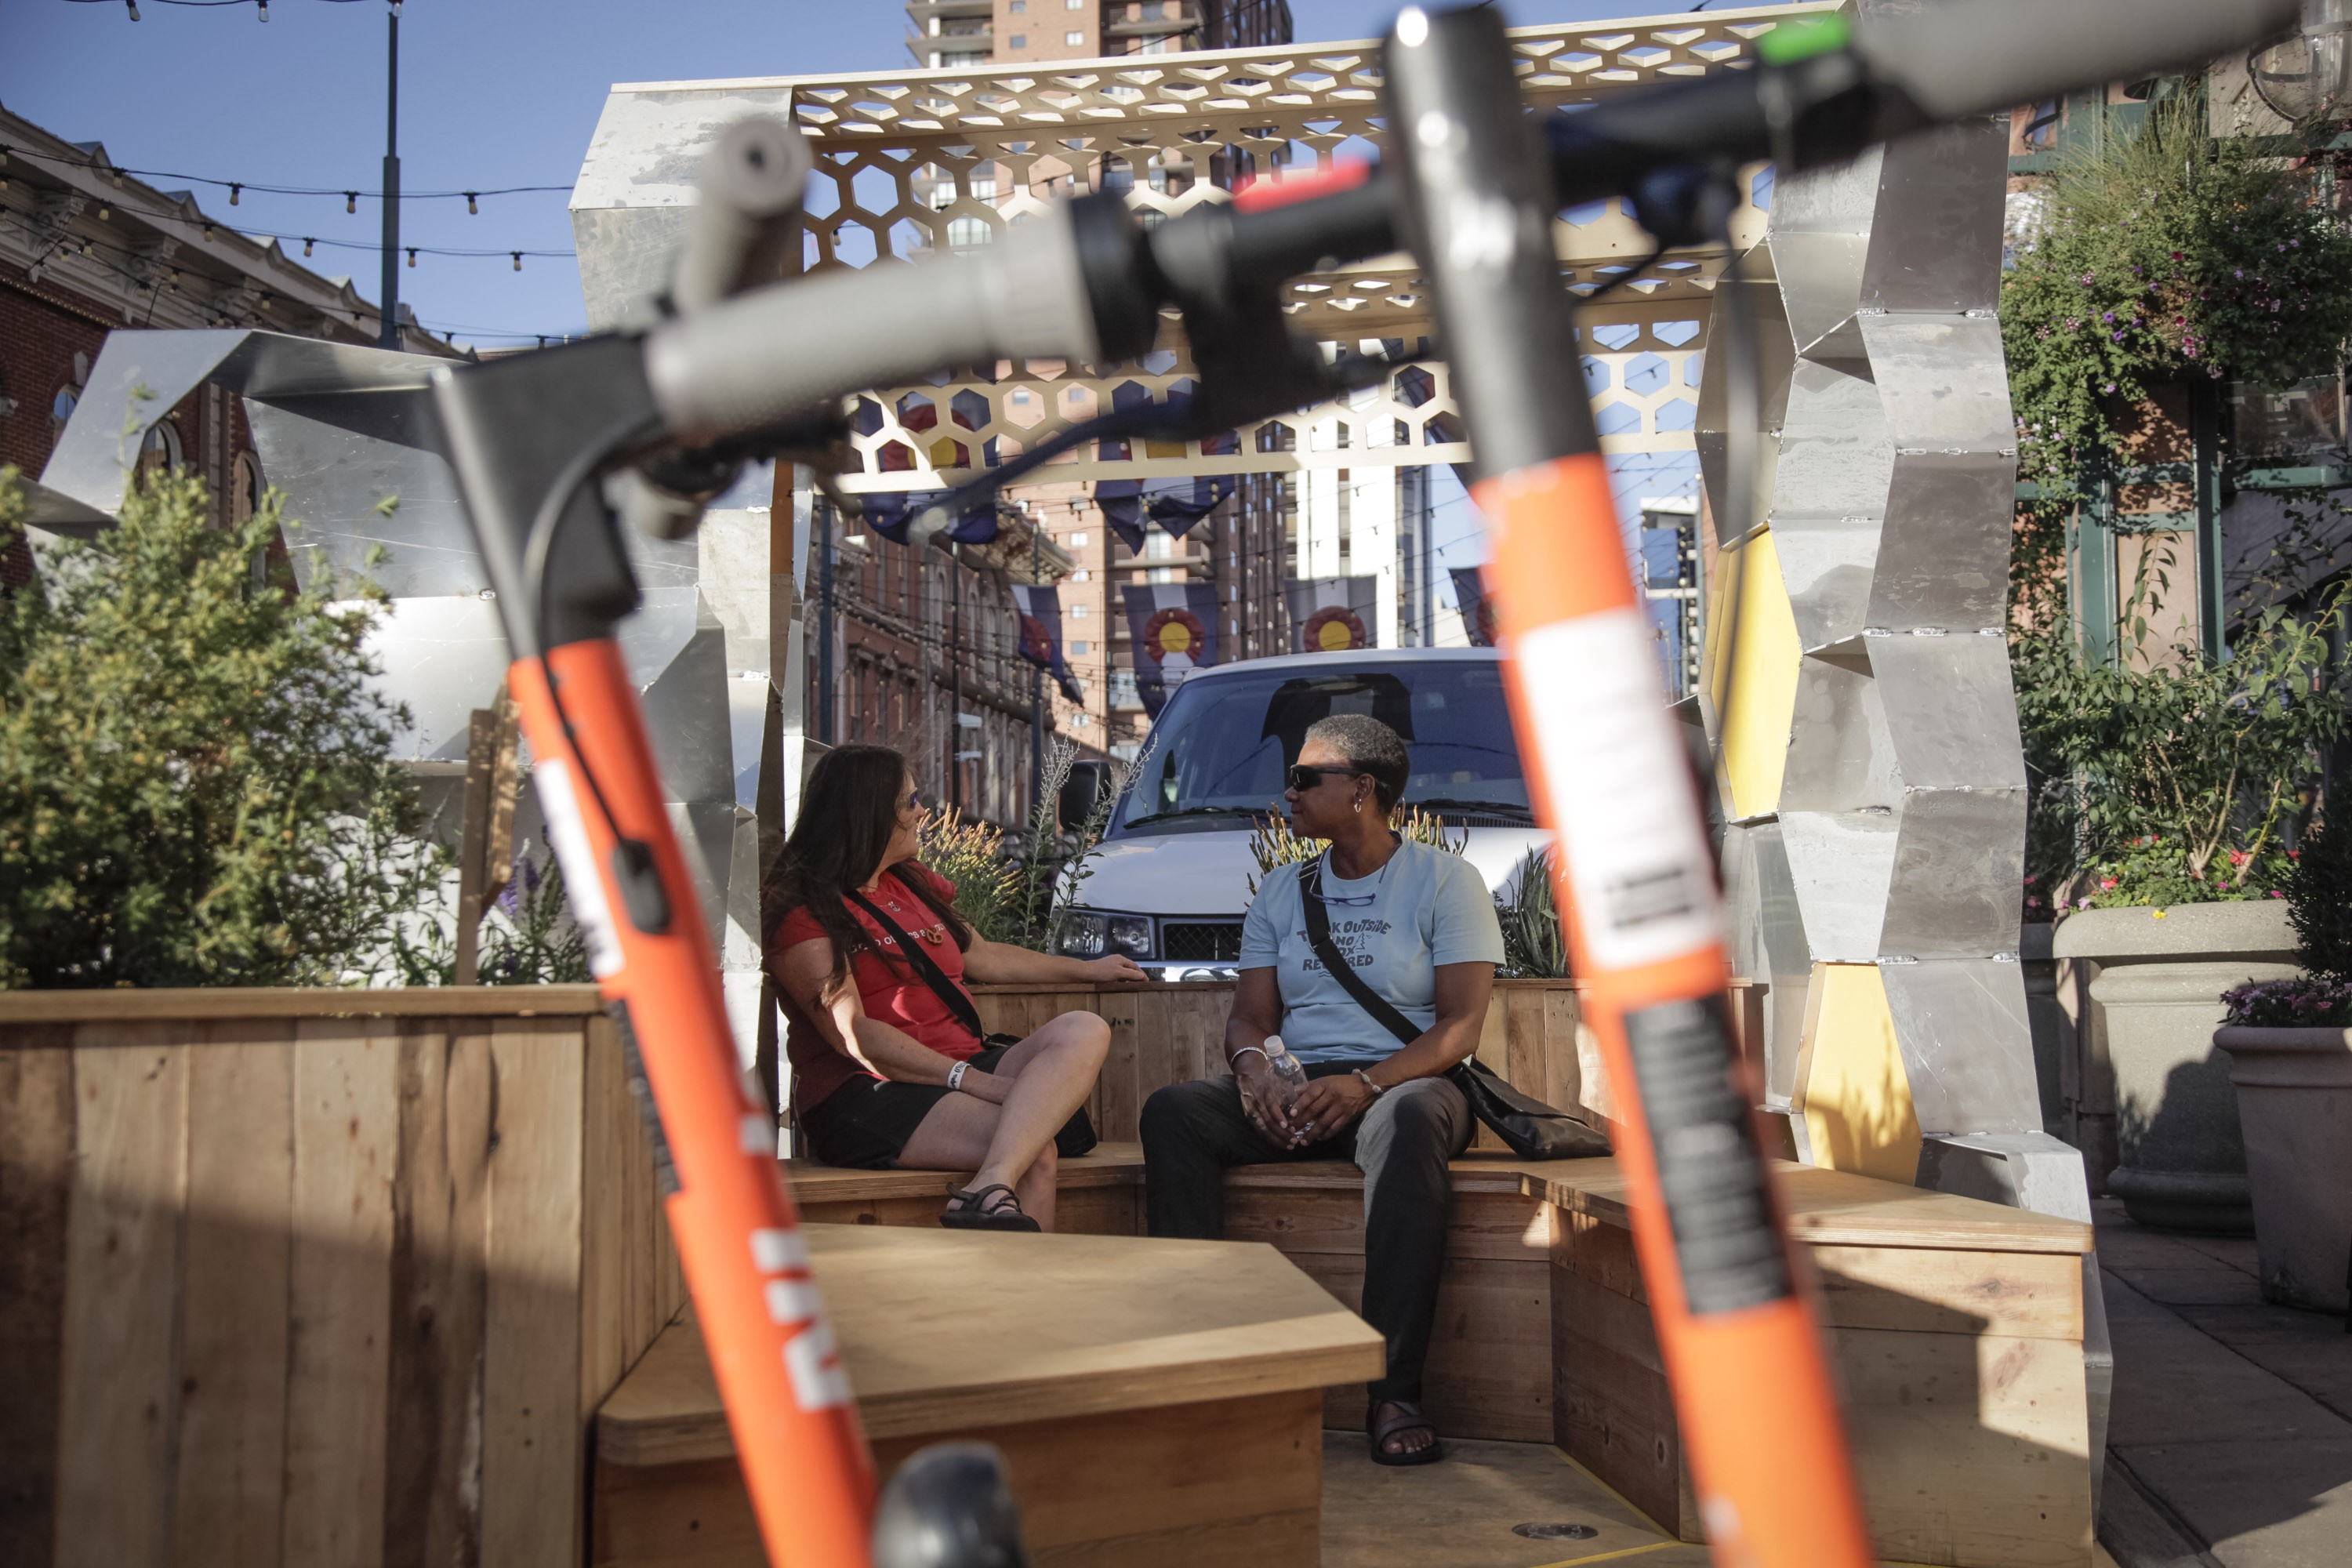 Man and woman sitting inside honeycomb parklet with Spin scooters